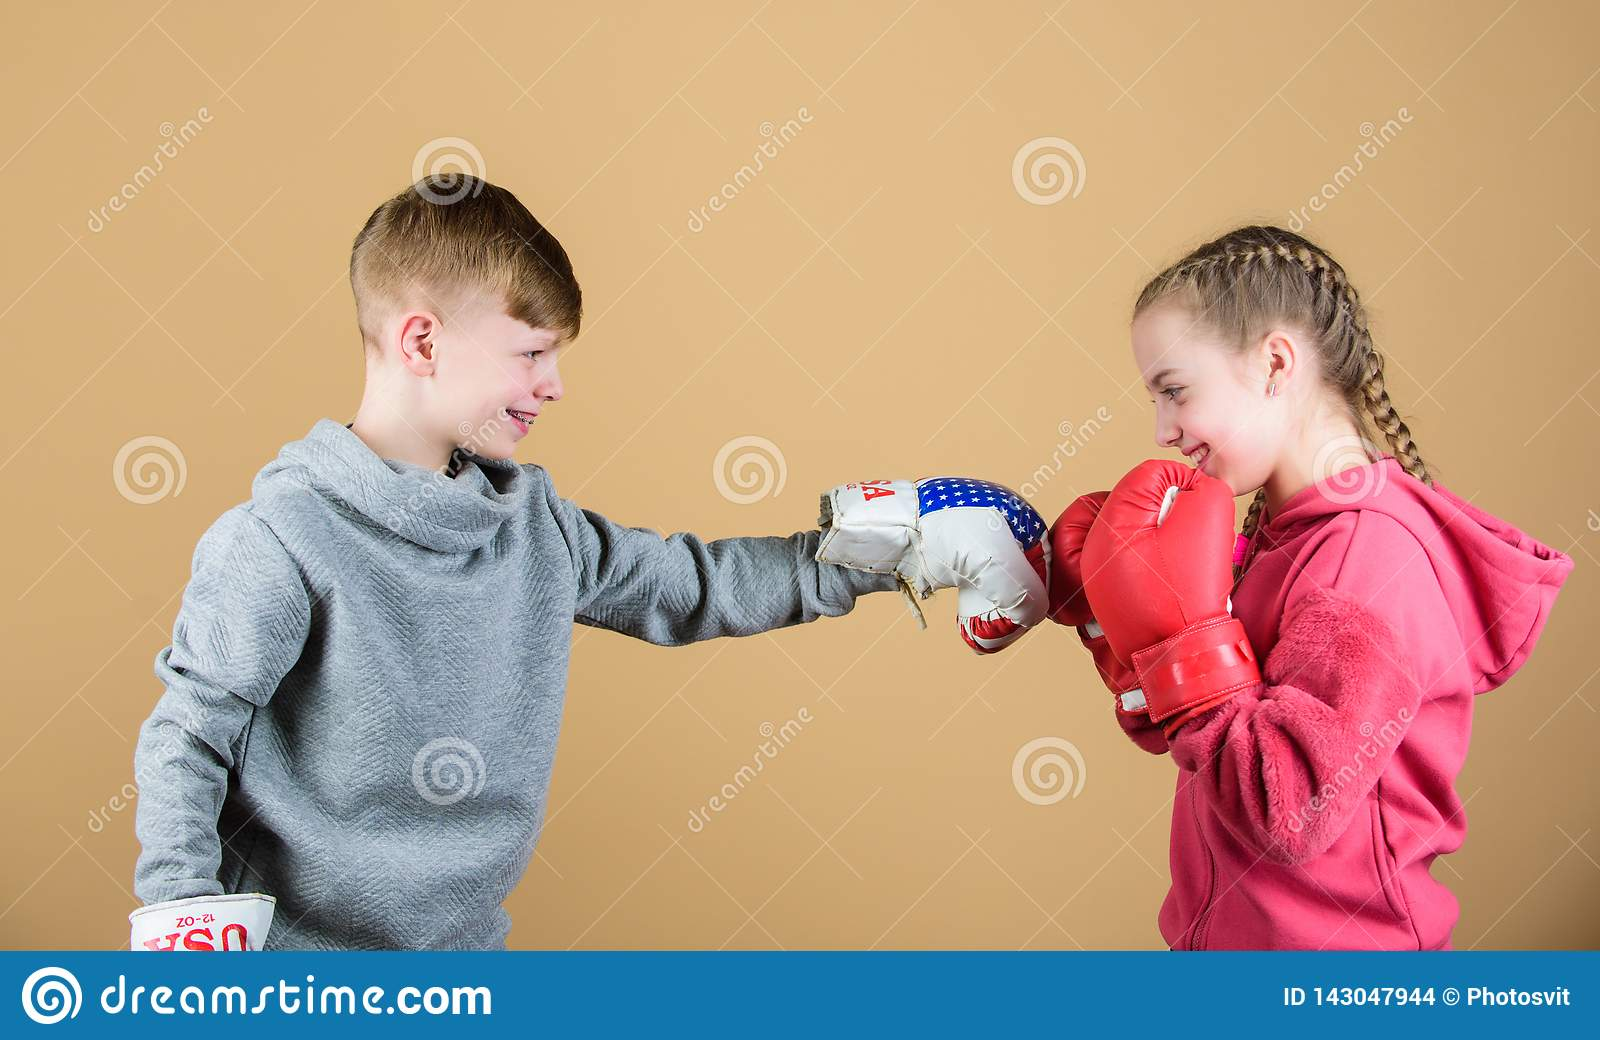 Battle for attention. Child sporty athlete practicing boxing skills. Boxing sport. Children wear boxing gloves while